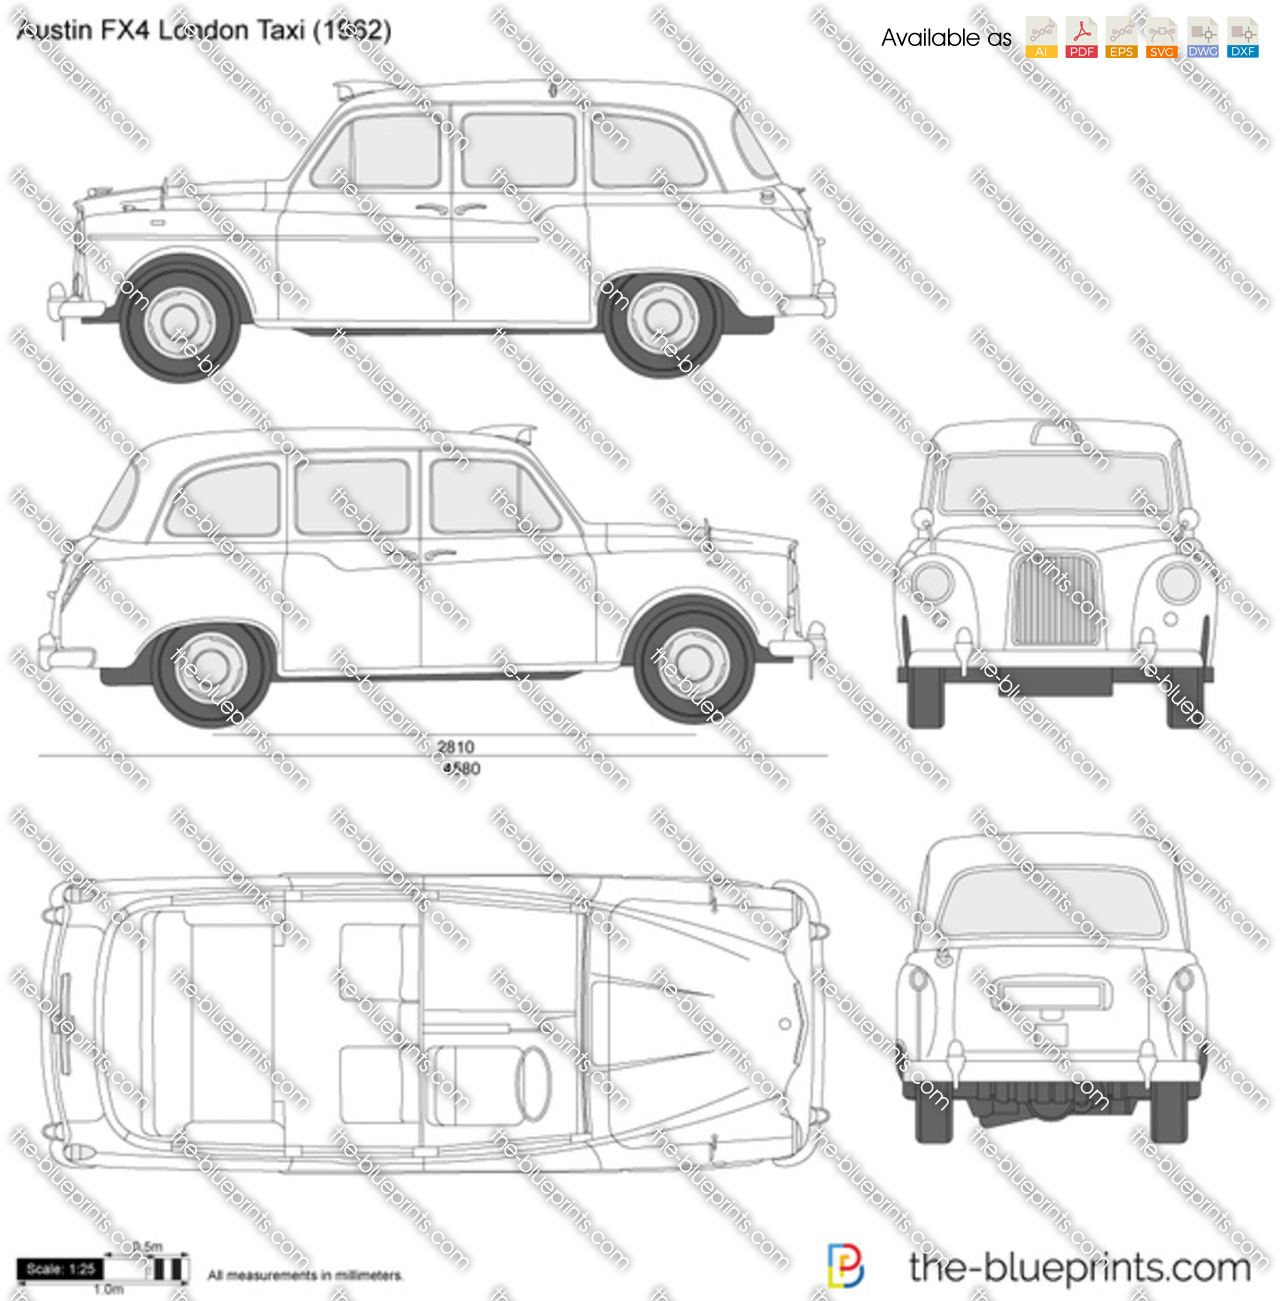 austin fx4 london taxi vector drawing